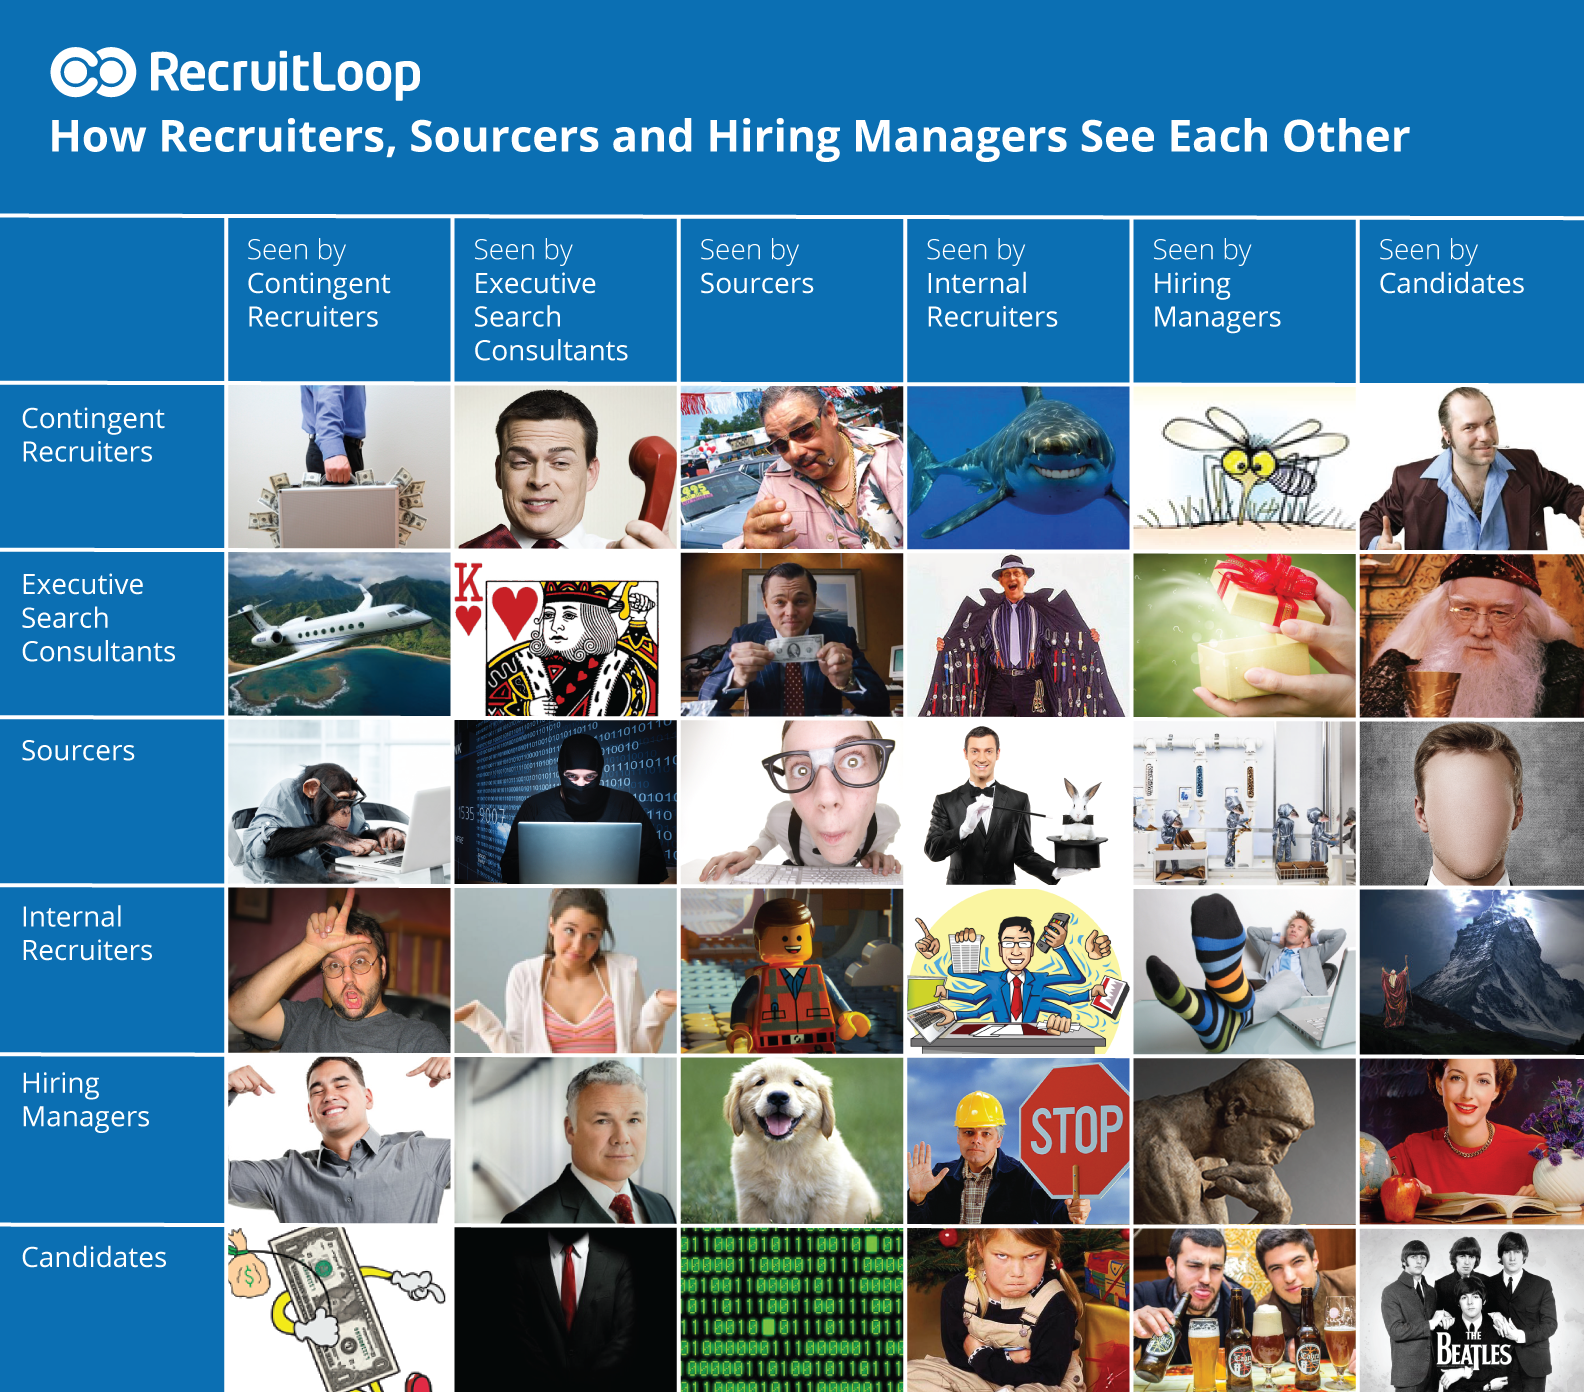 How Hiring Managers and Recruiters Think about one another